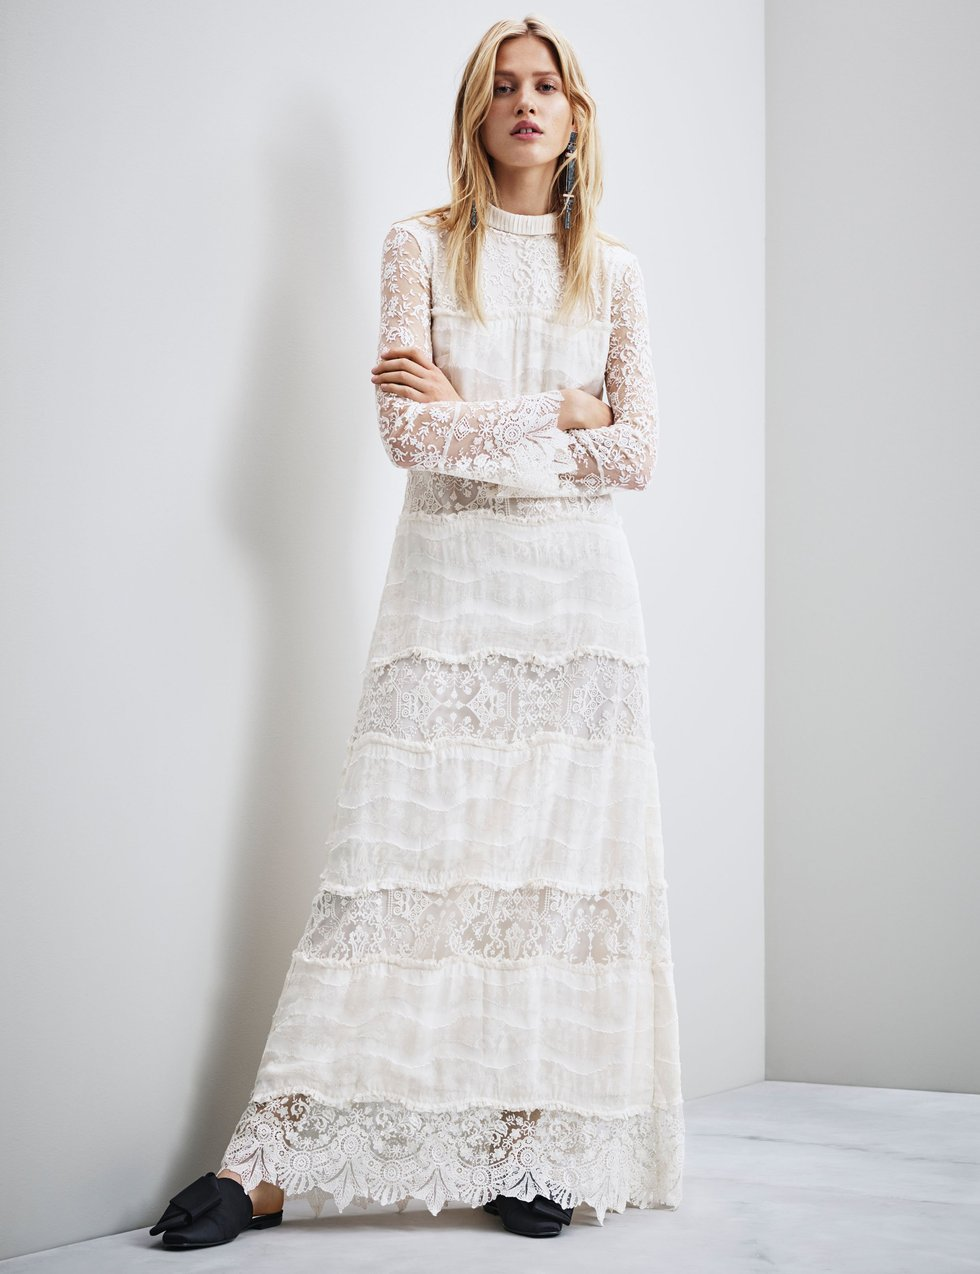 Where to buy wedding dresses that are ethical and affordable